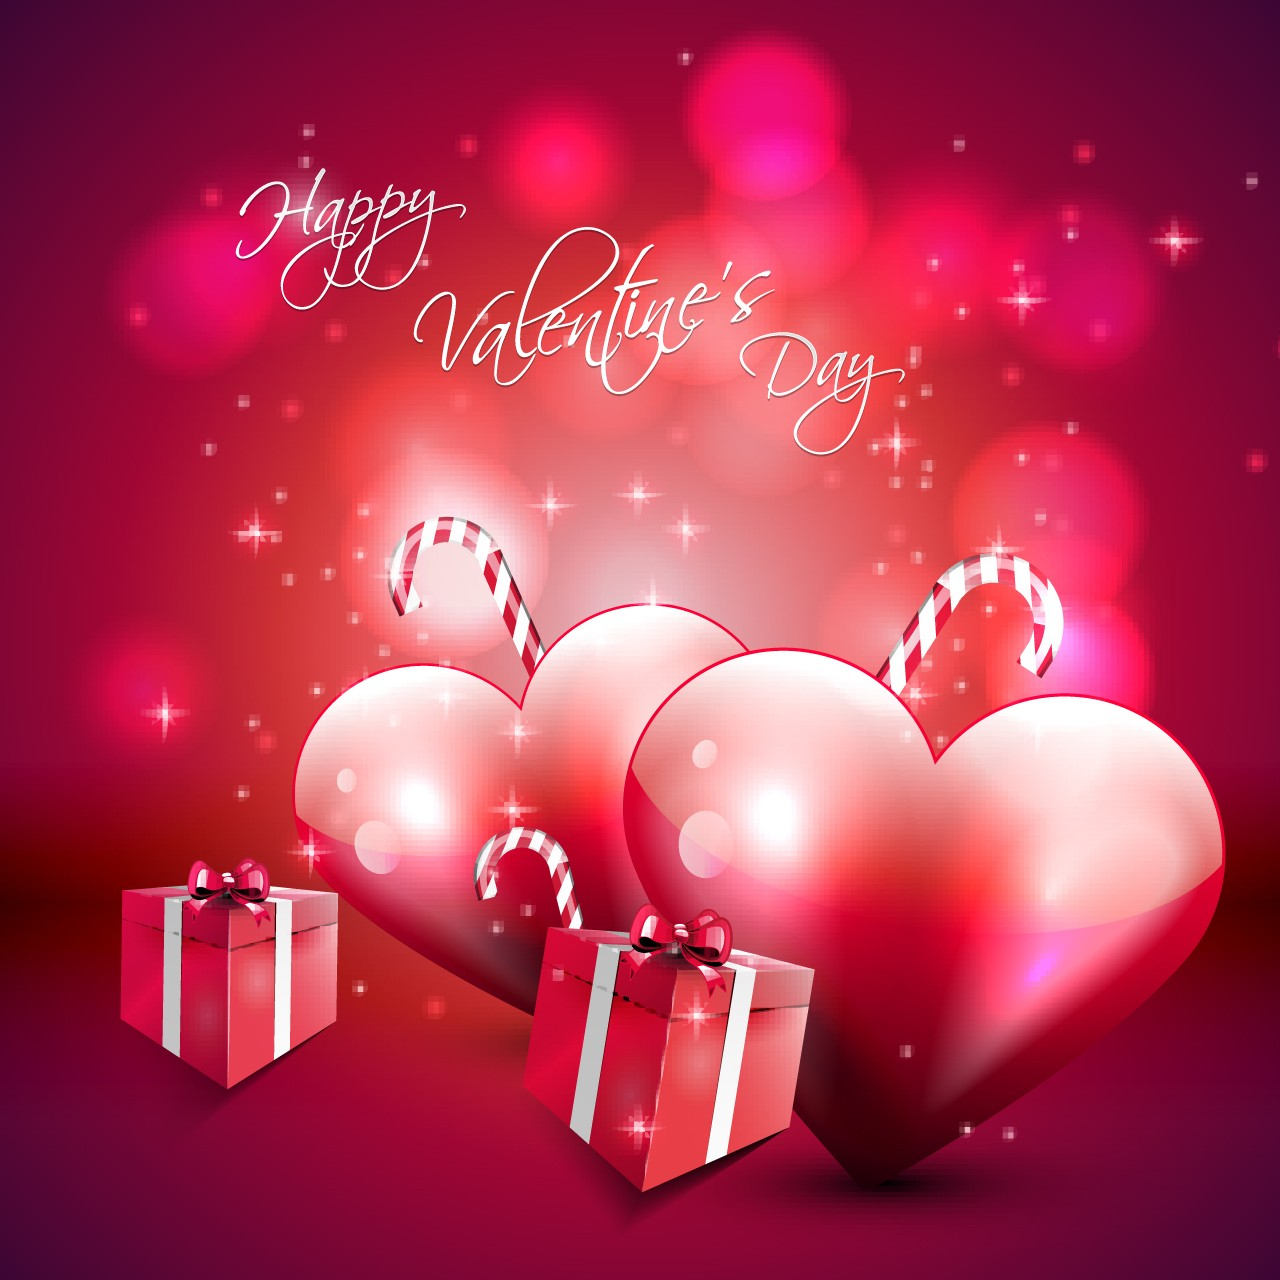 oowwoh happy valentines day wallpapers photo on hd wallpaper